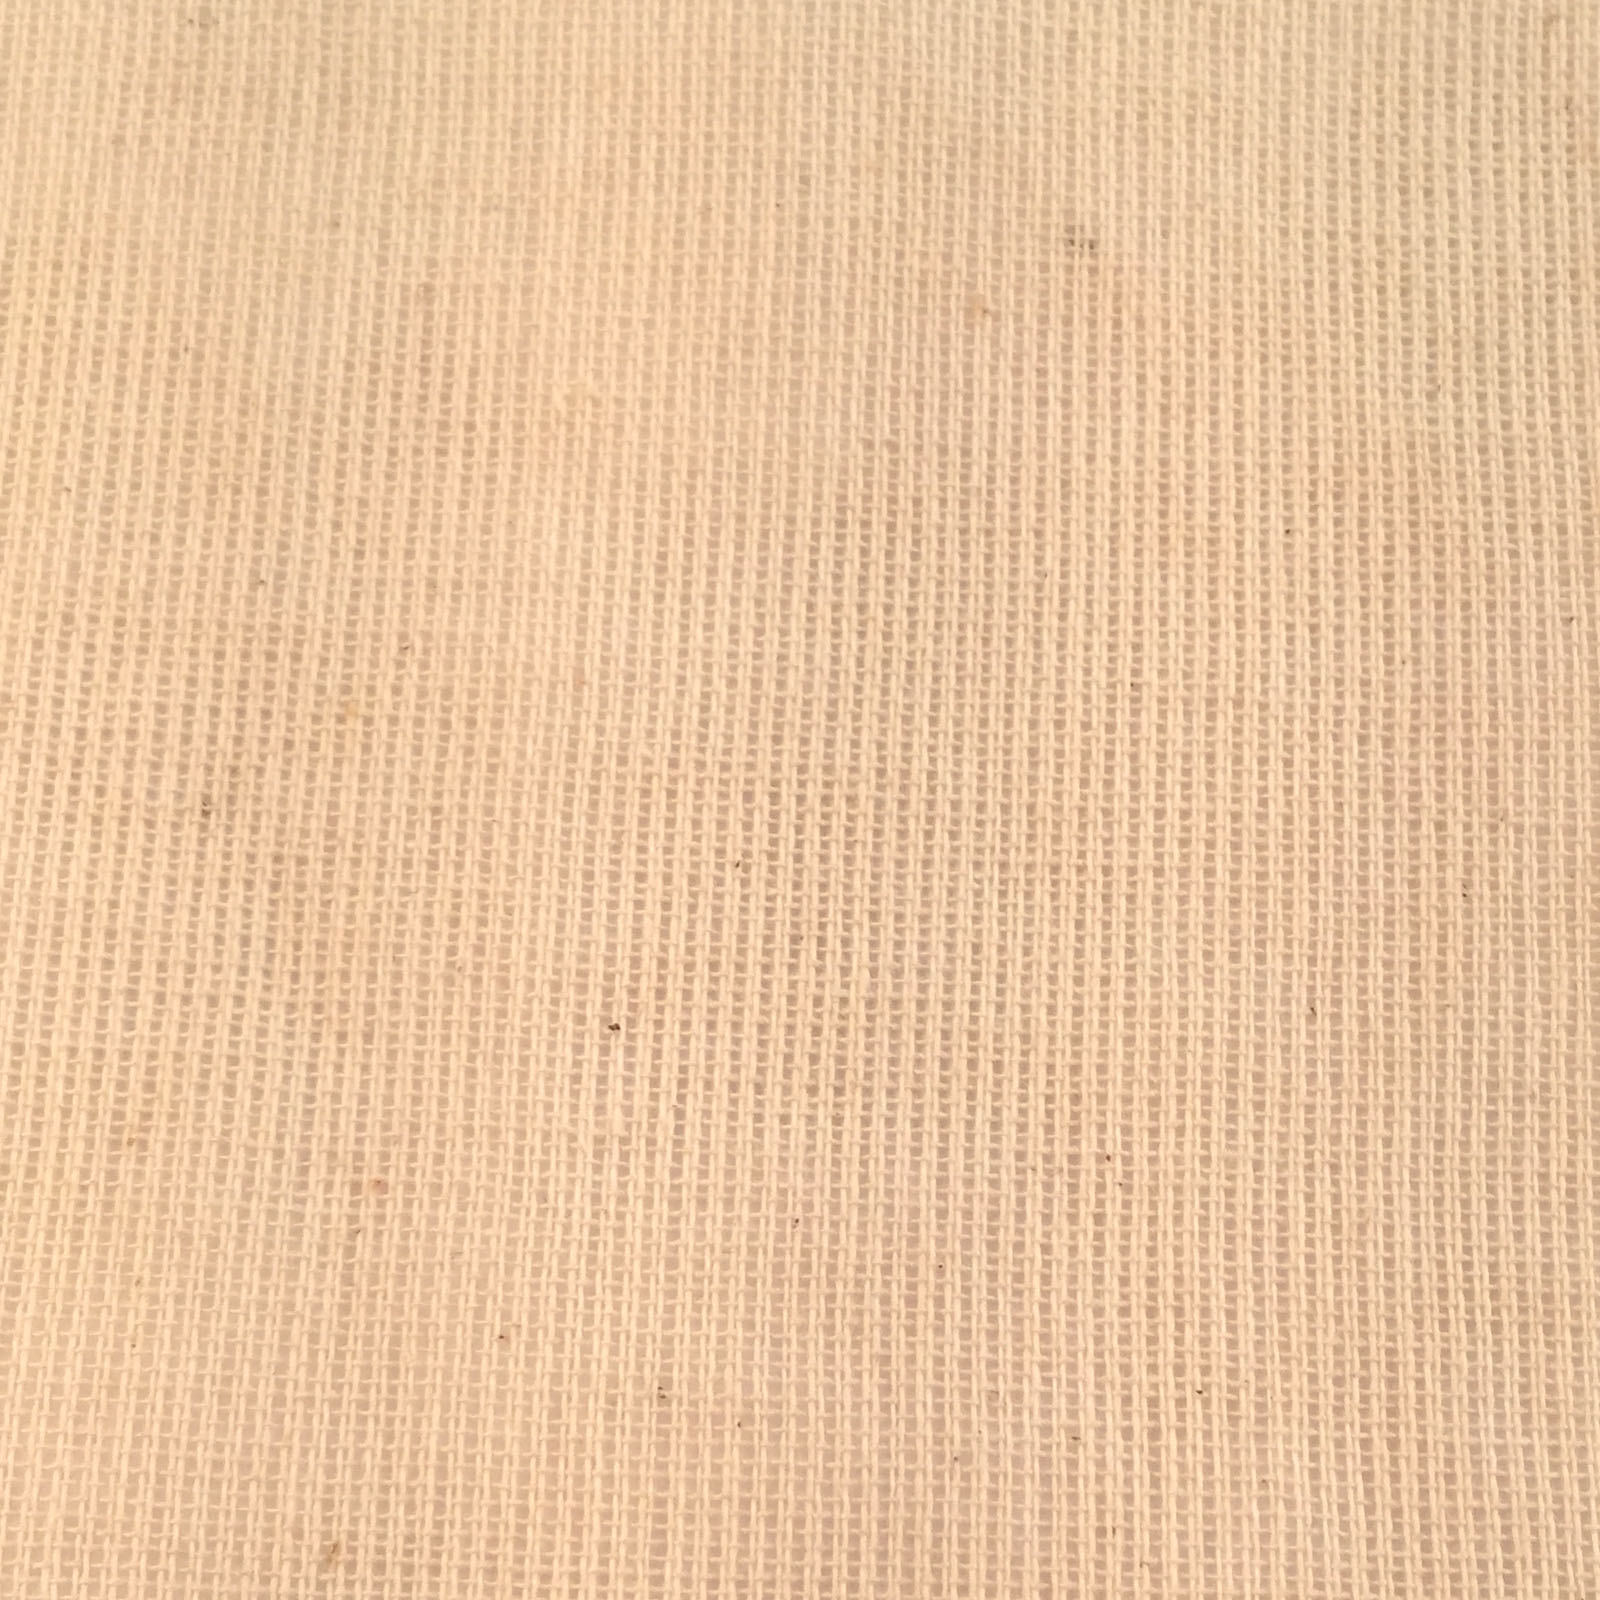 Natural Colored Linen Fabric